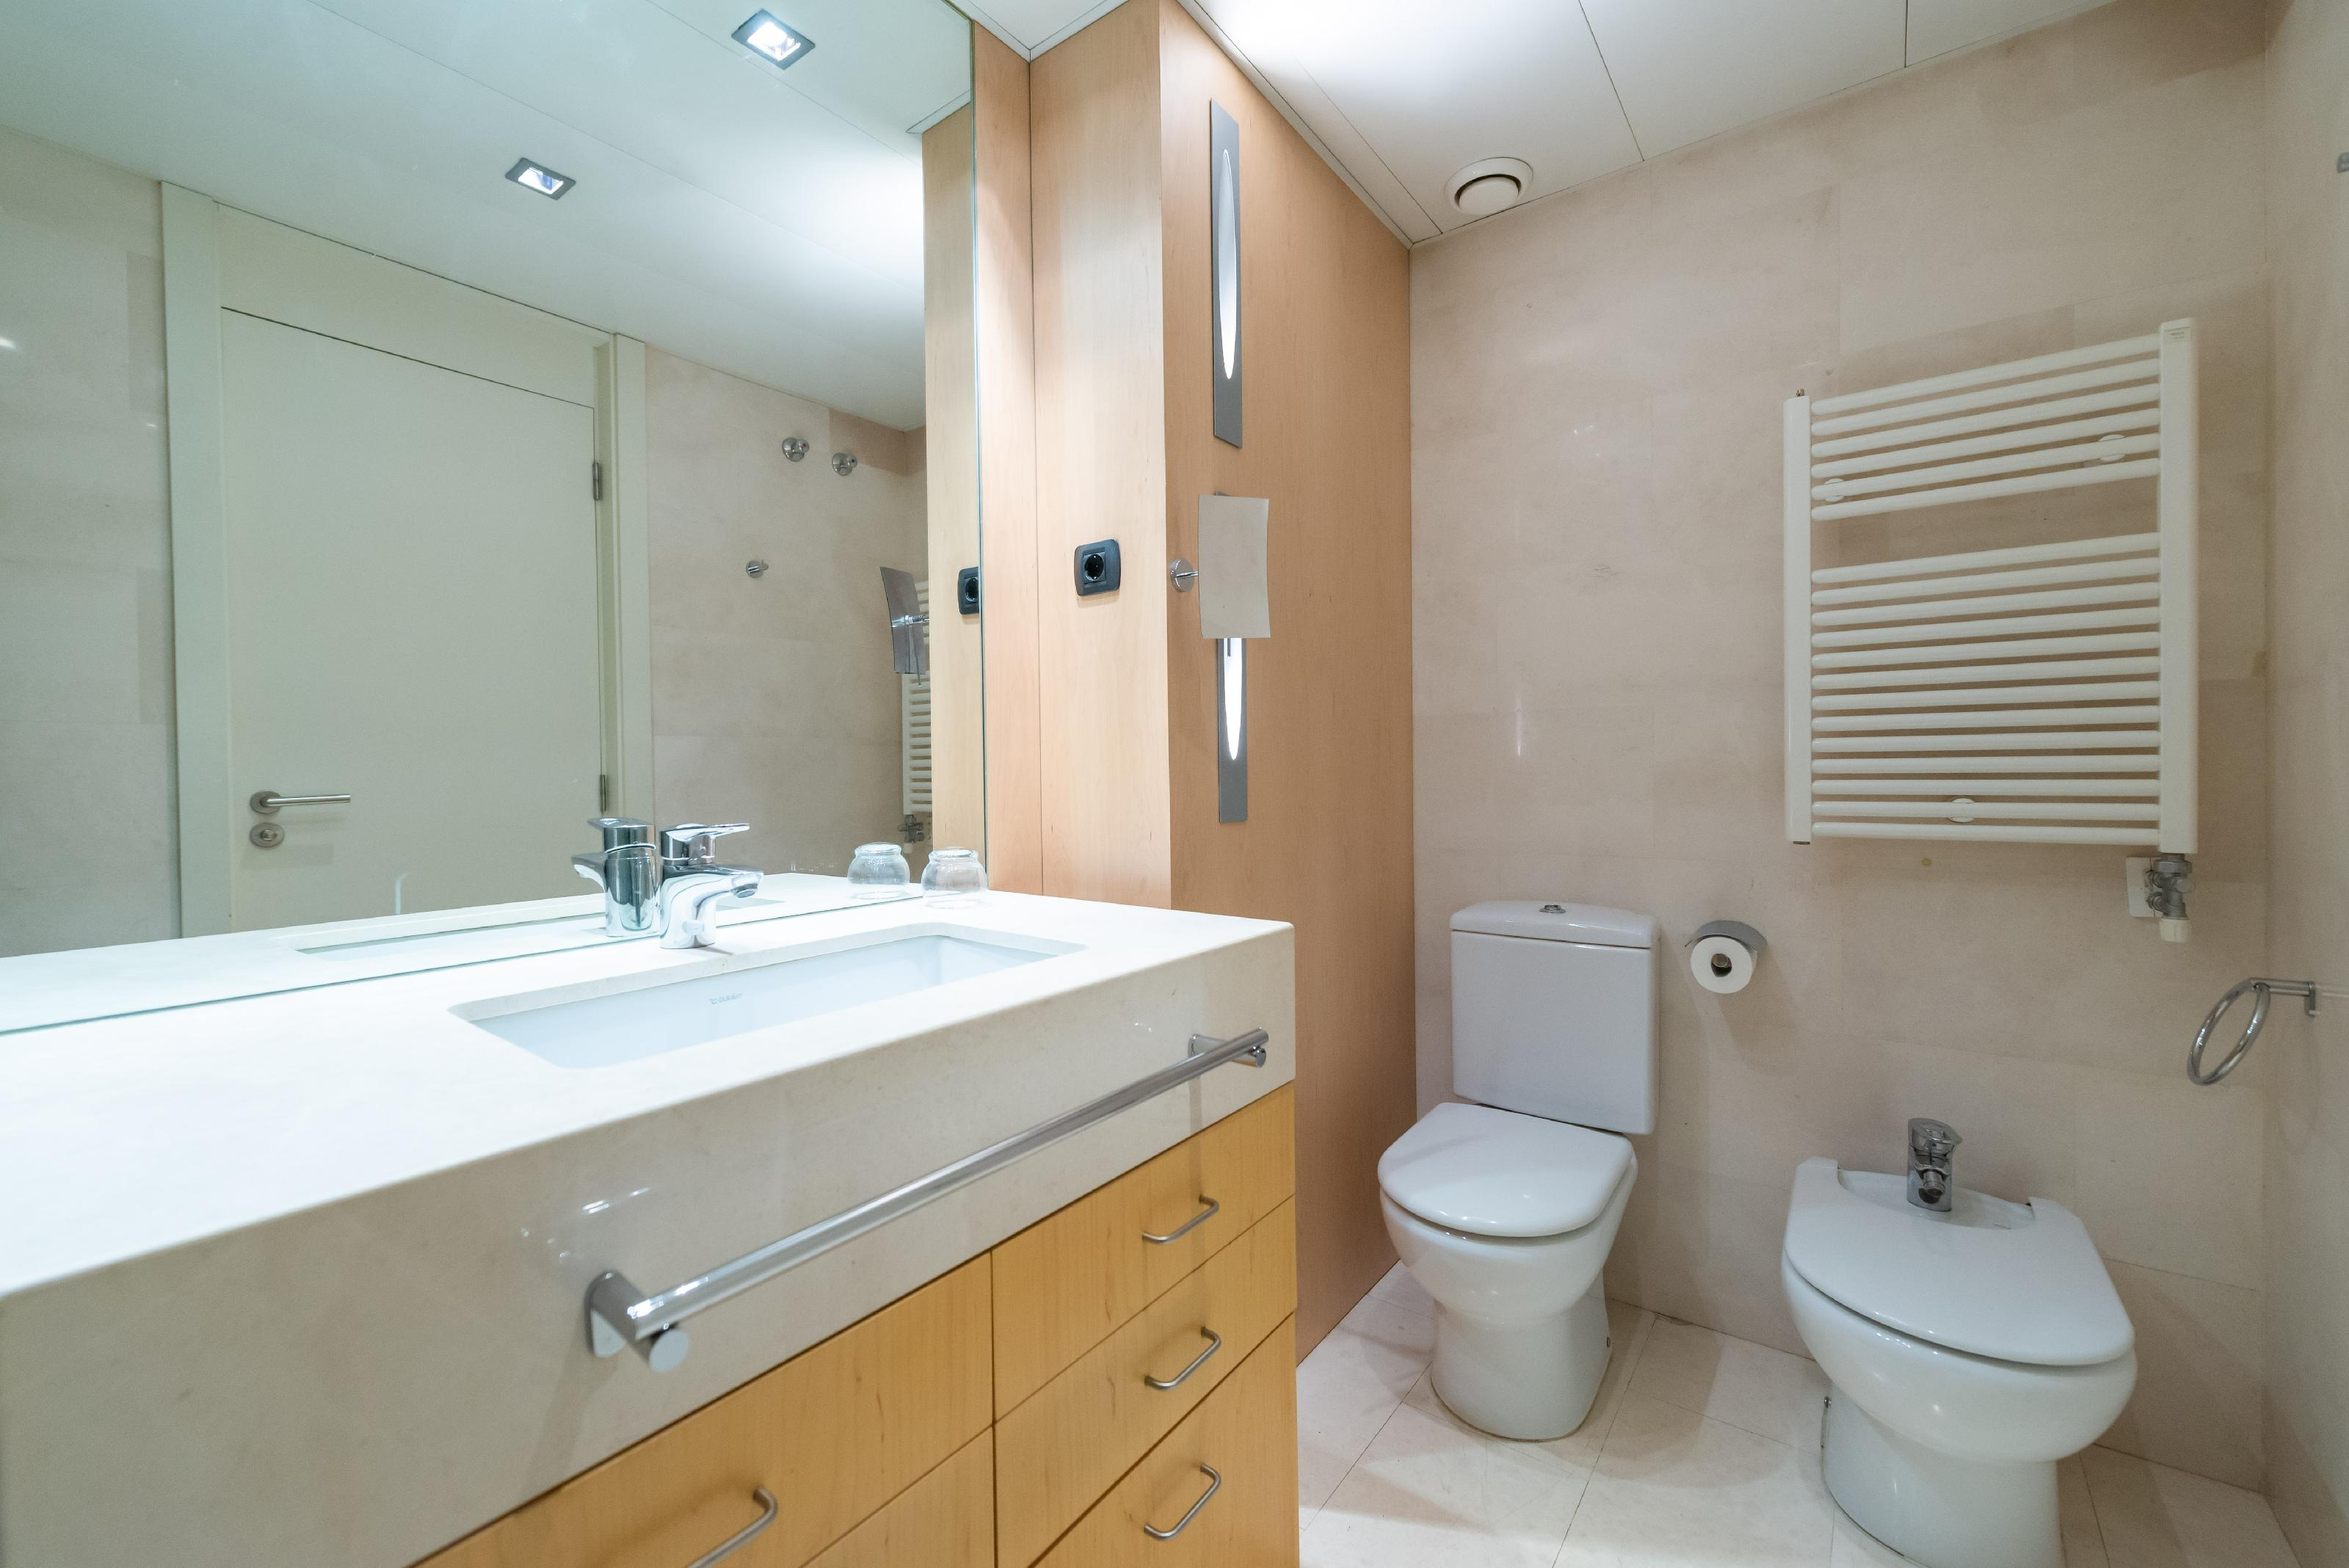 246682 Flat for sale in Gràcia, Vallcarca and Els Penitents 18